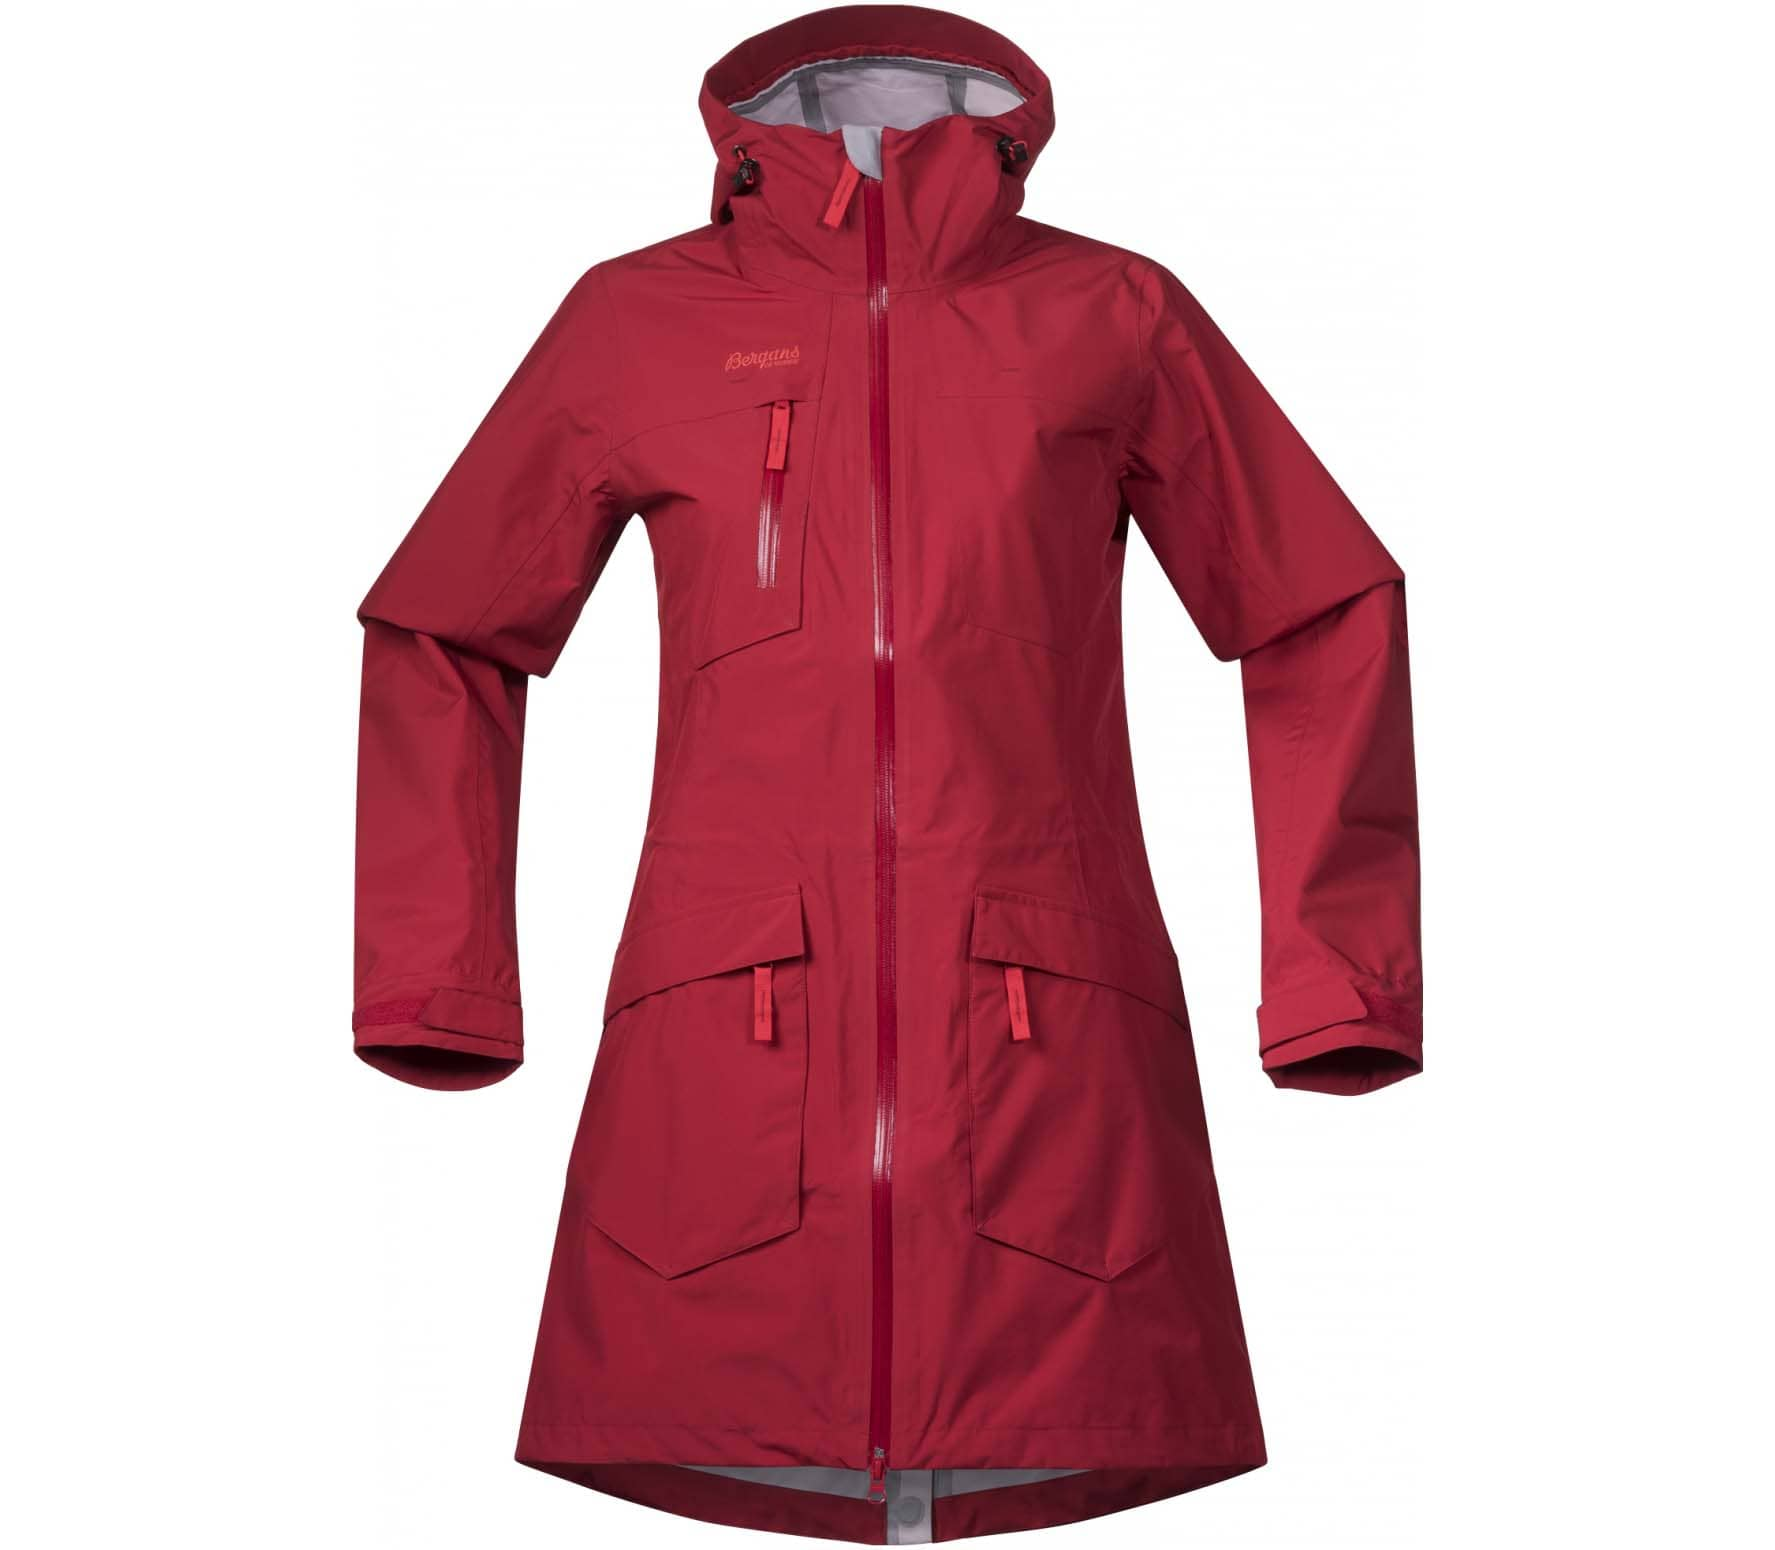 Hella Shop Bergans Hella Women S Raincoat Red